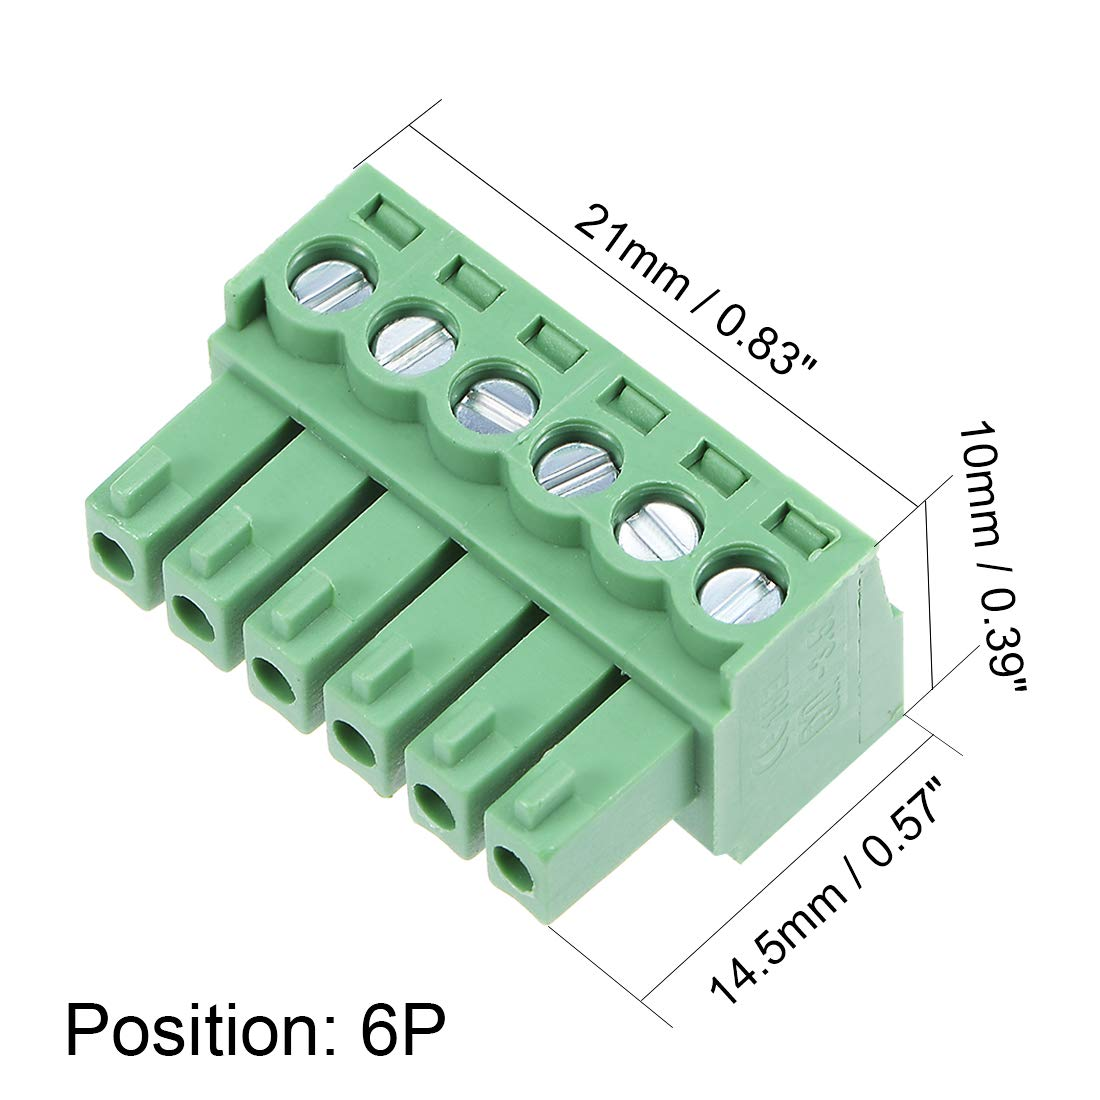 uxcell 15Pcs AC 300V 8A 3.5mm Pitch 2P Flat Angle Needle Seat Plug-In PCB Terminal Block Connector green